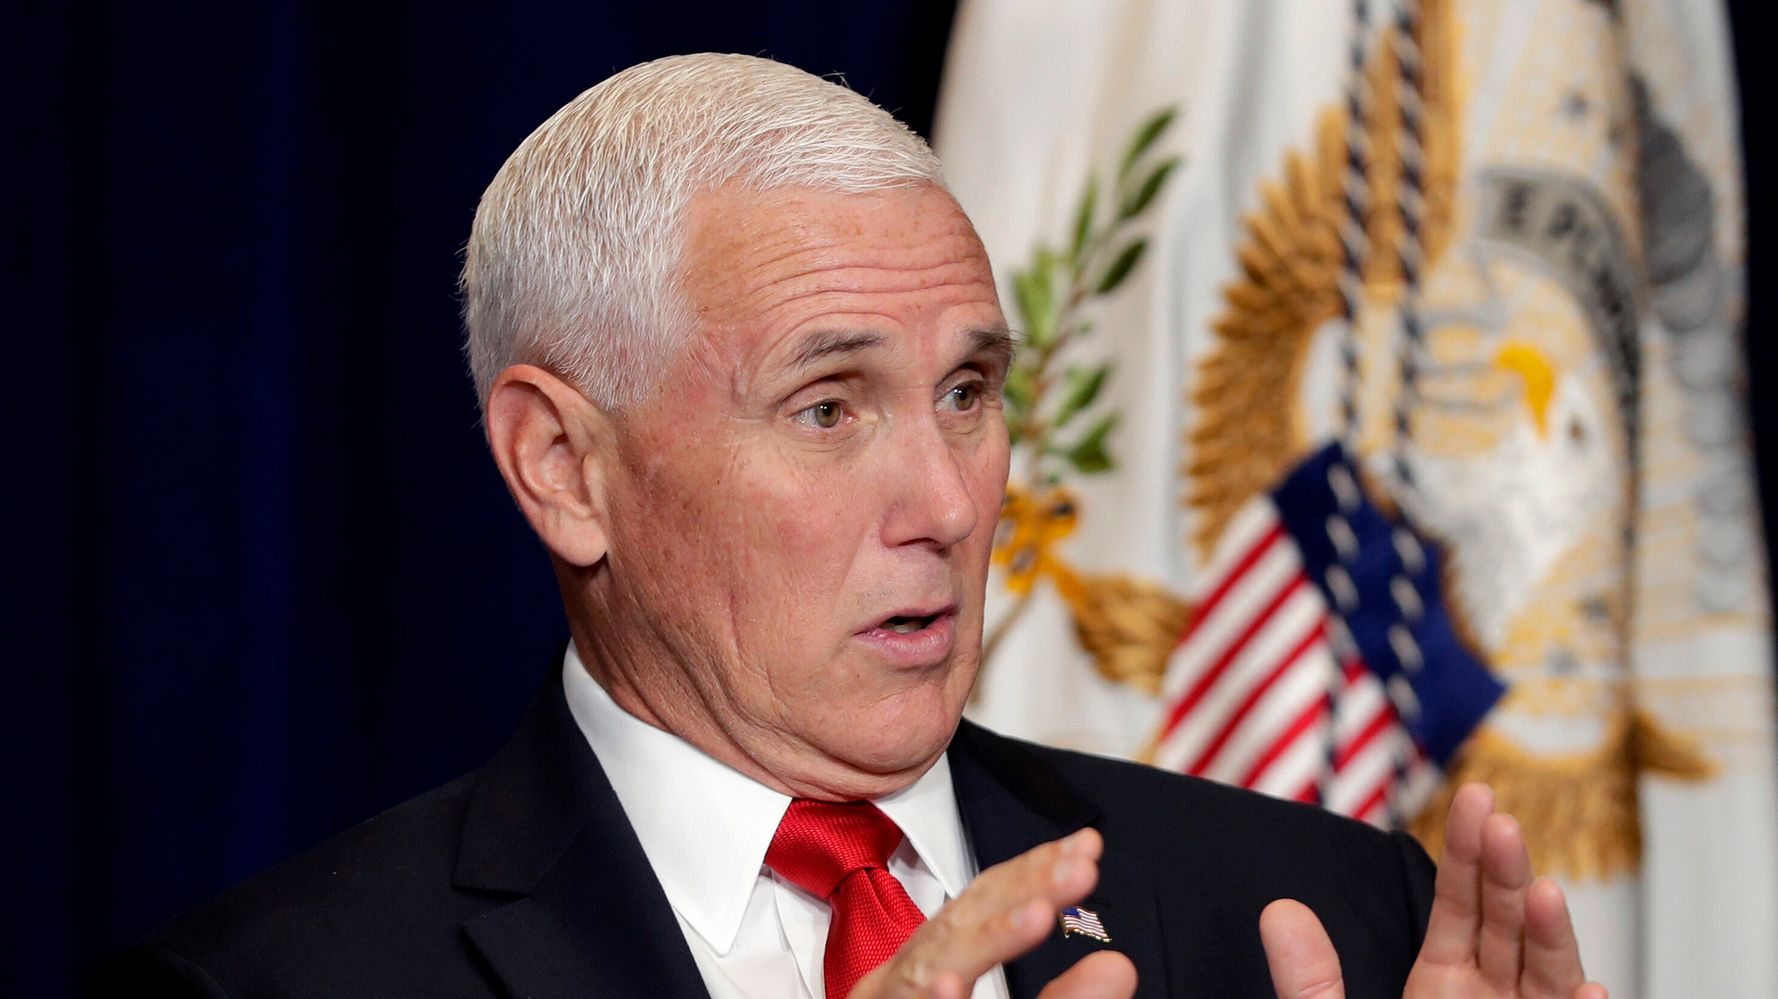 Westlake Legal Group 5d97a2b72100005000a95d13 House Asks Pence For Ukraine-Related Documents